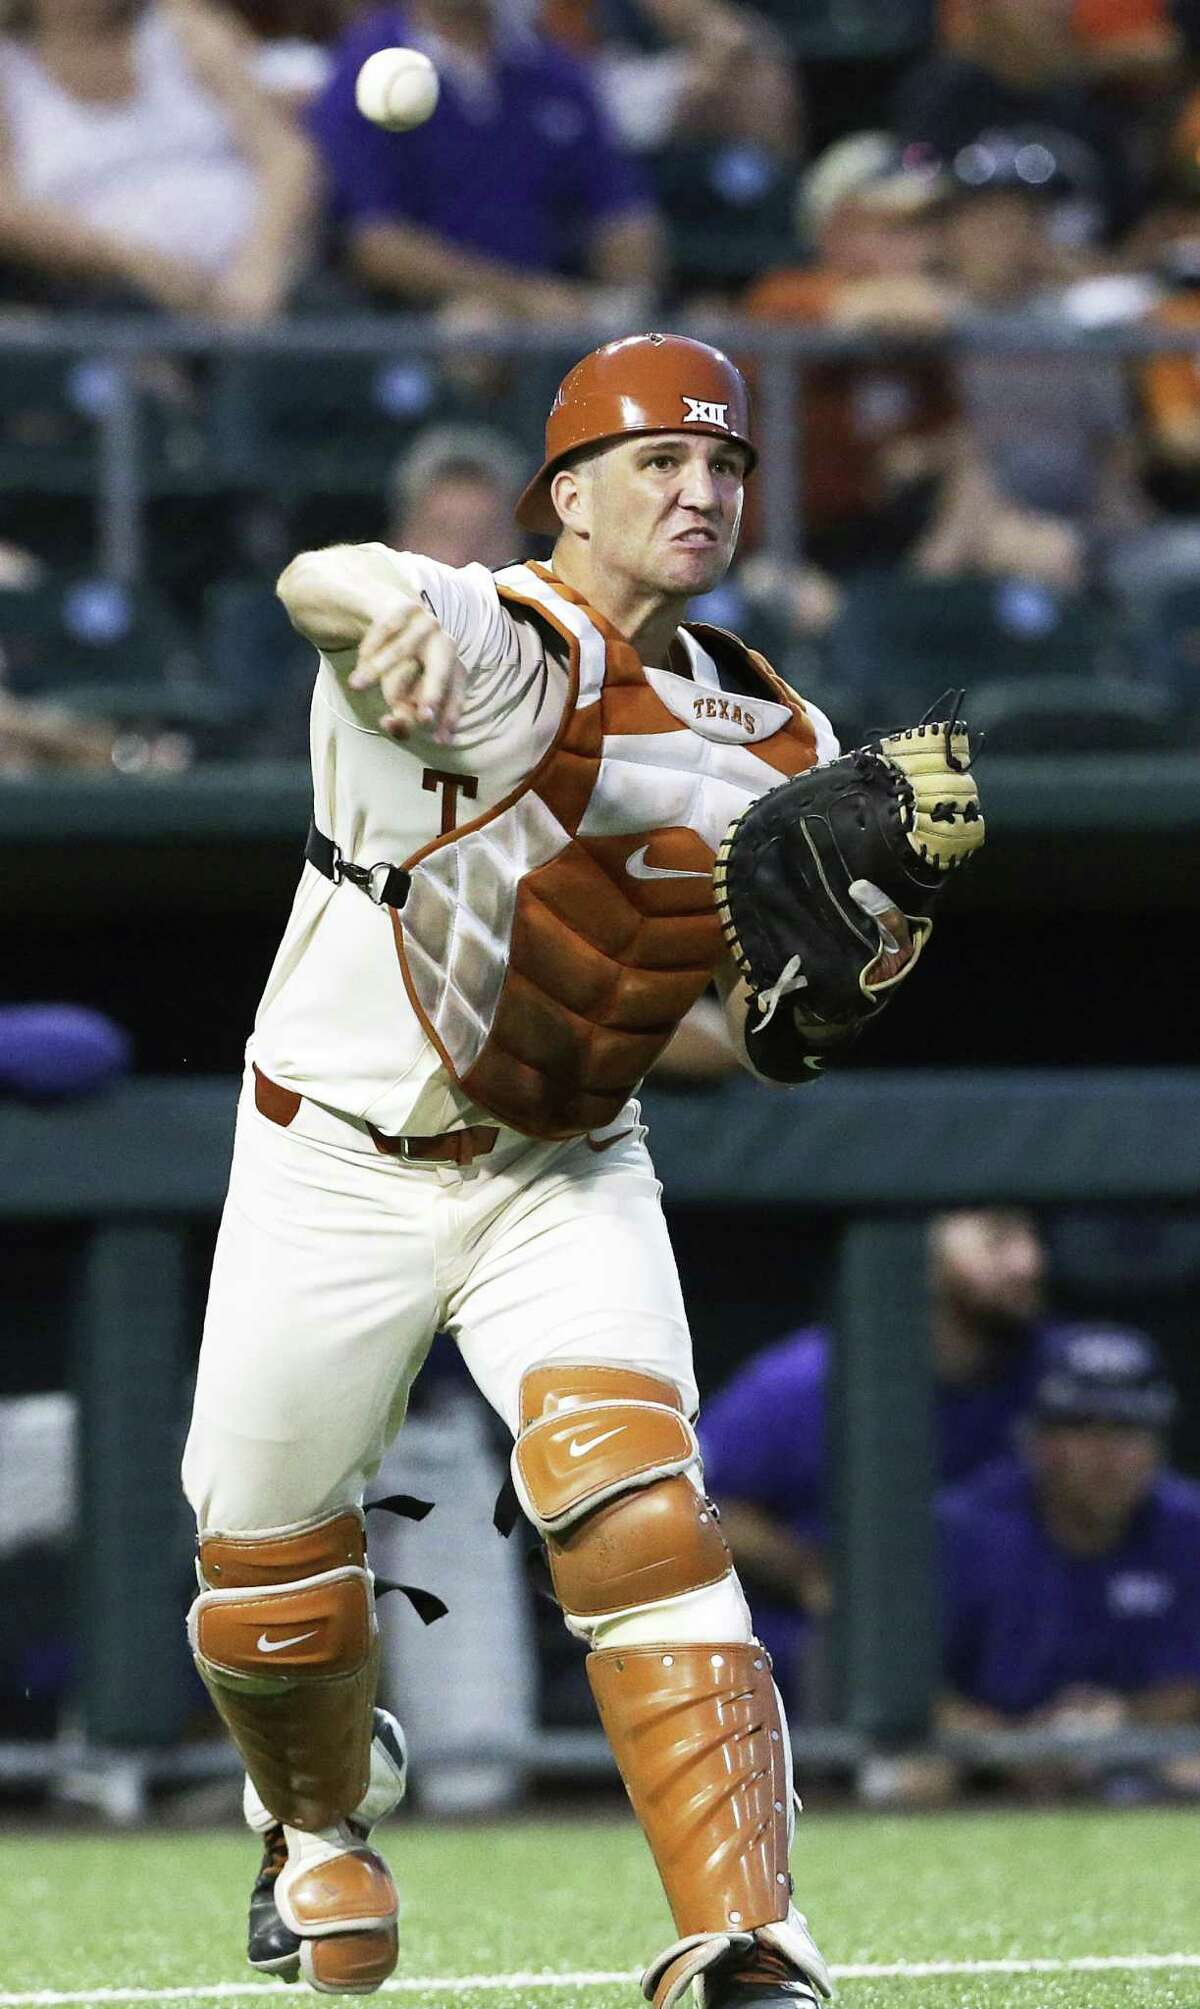 Longhorn catcher DJ Petrinsky throws out a runner at first on a bunt try as UT hosts TCU in men's baseball at Disch-Falk Field on May 18, 2018.